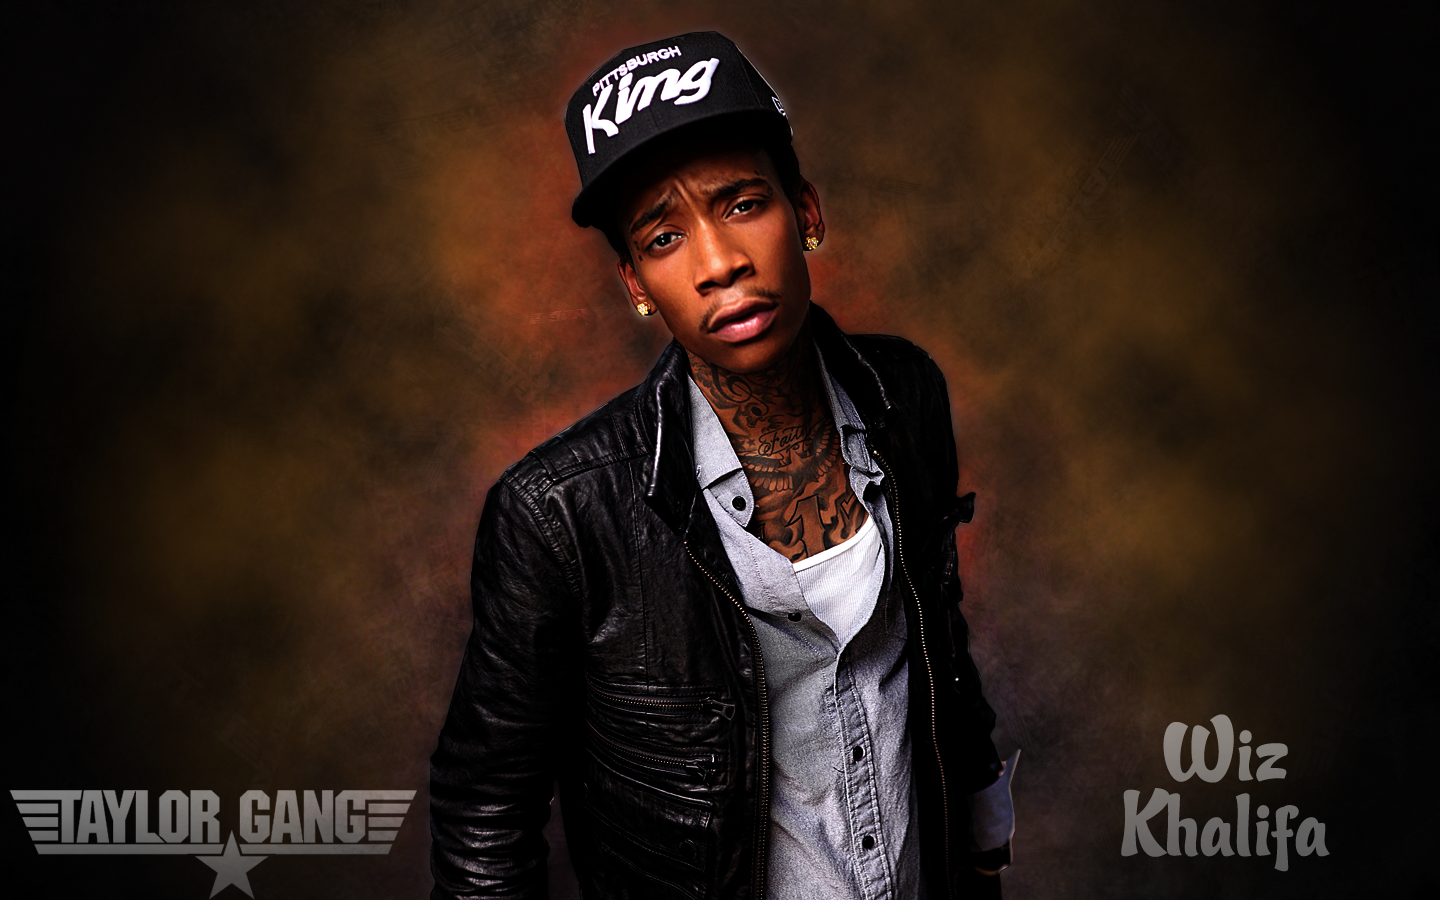 wiz khalifa wallpaper 2012 hd images pictures becuo